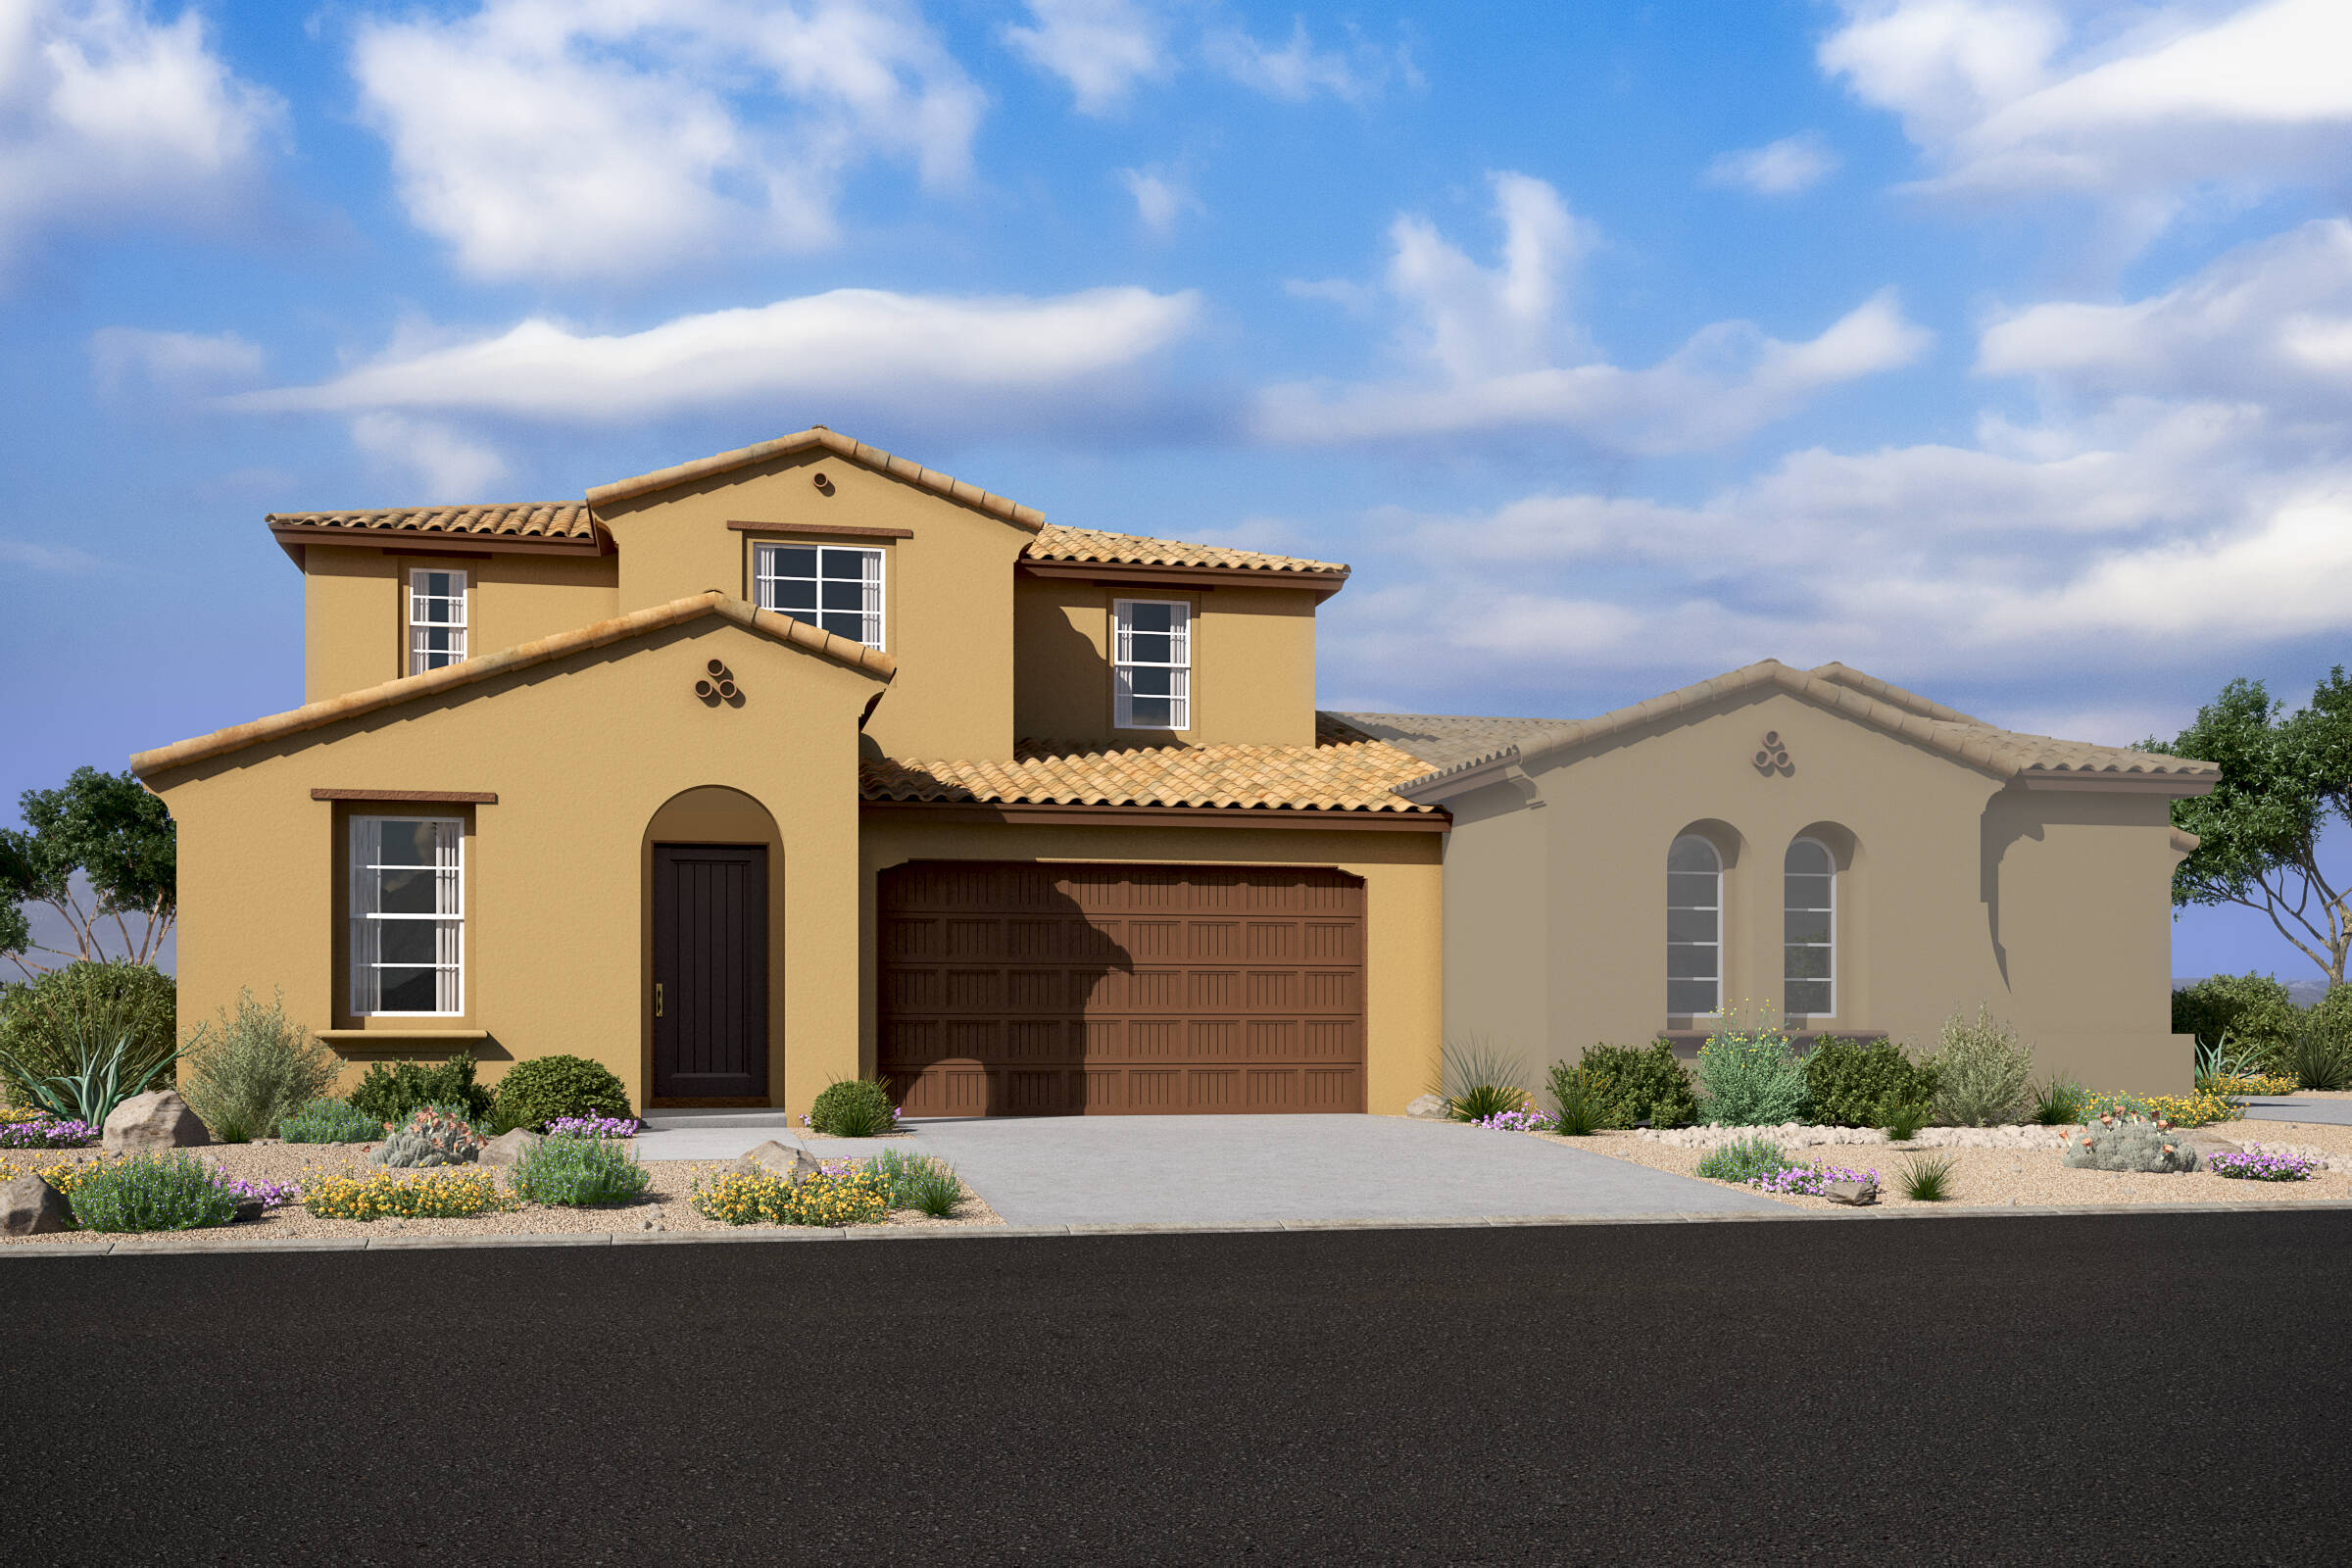 meridian spanish colonial d new homes silverstone with ascent